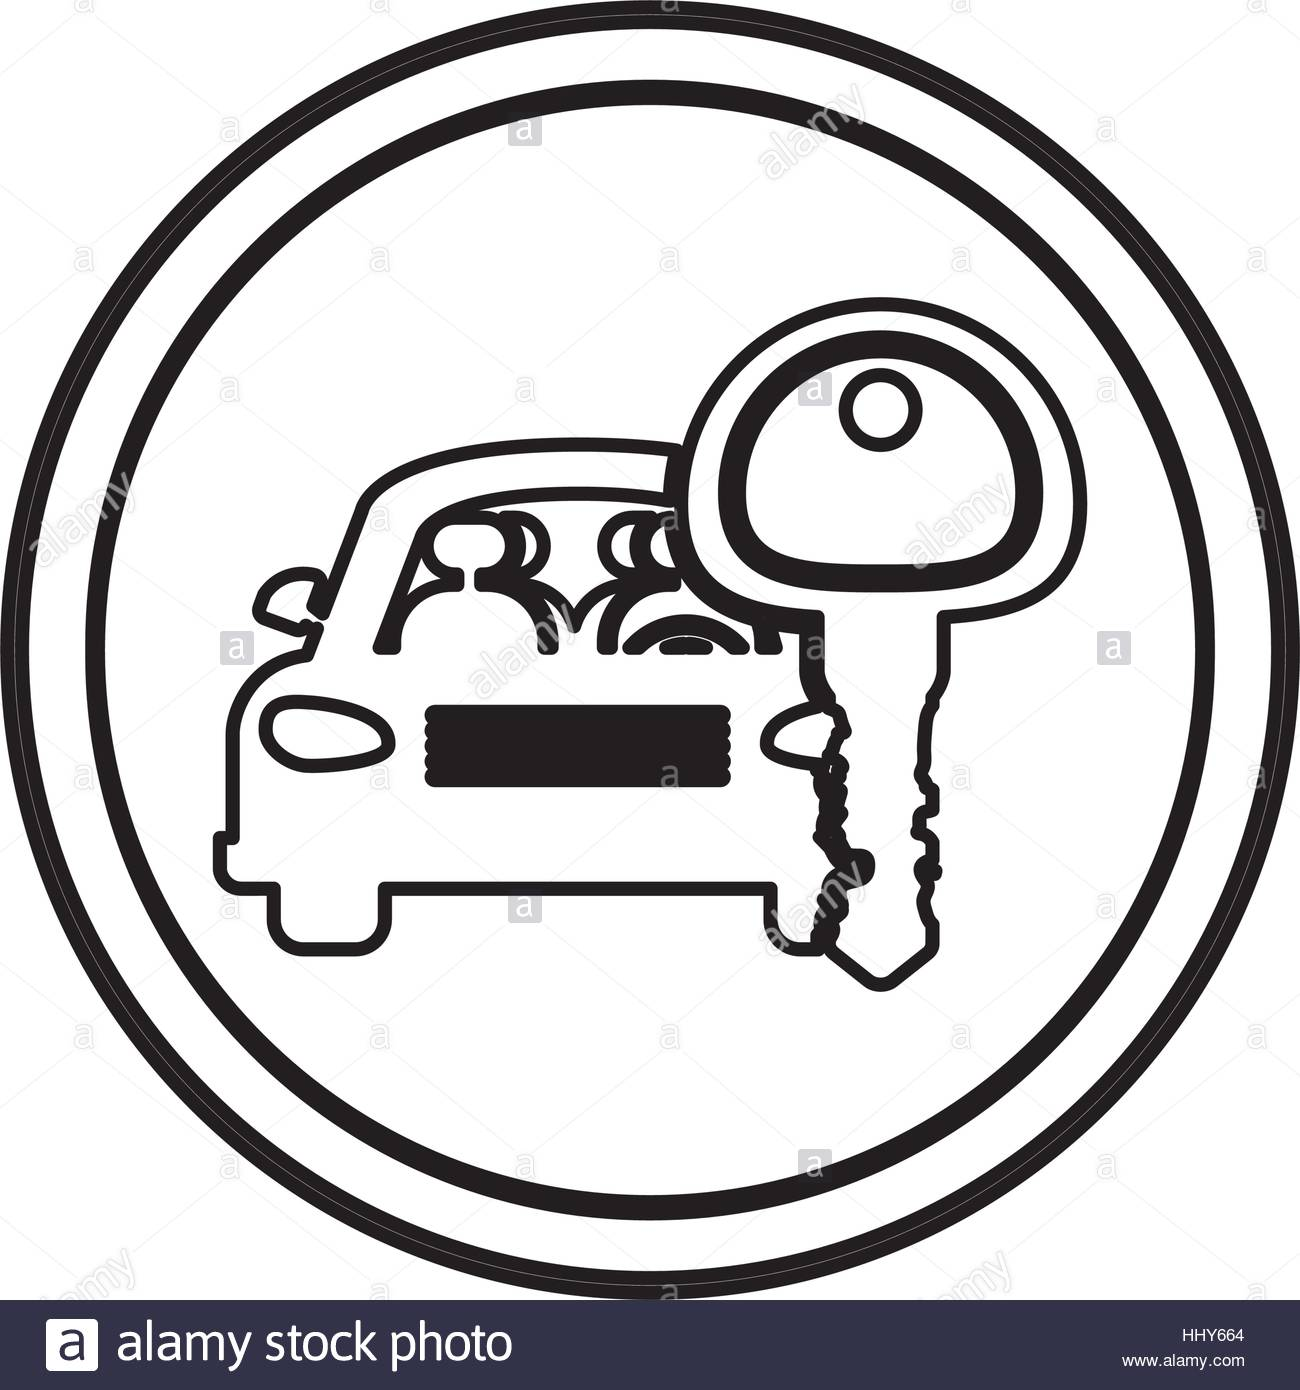 1300x1390 Silhouette Circular Border With Car And Key Vector Illustration